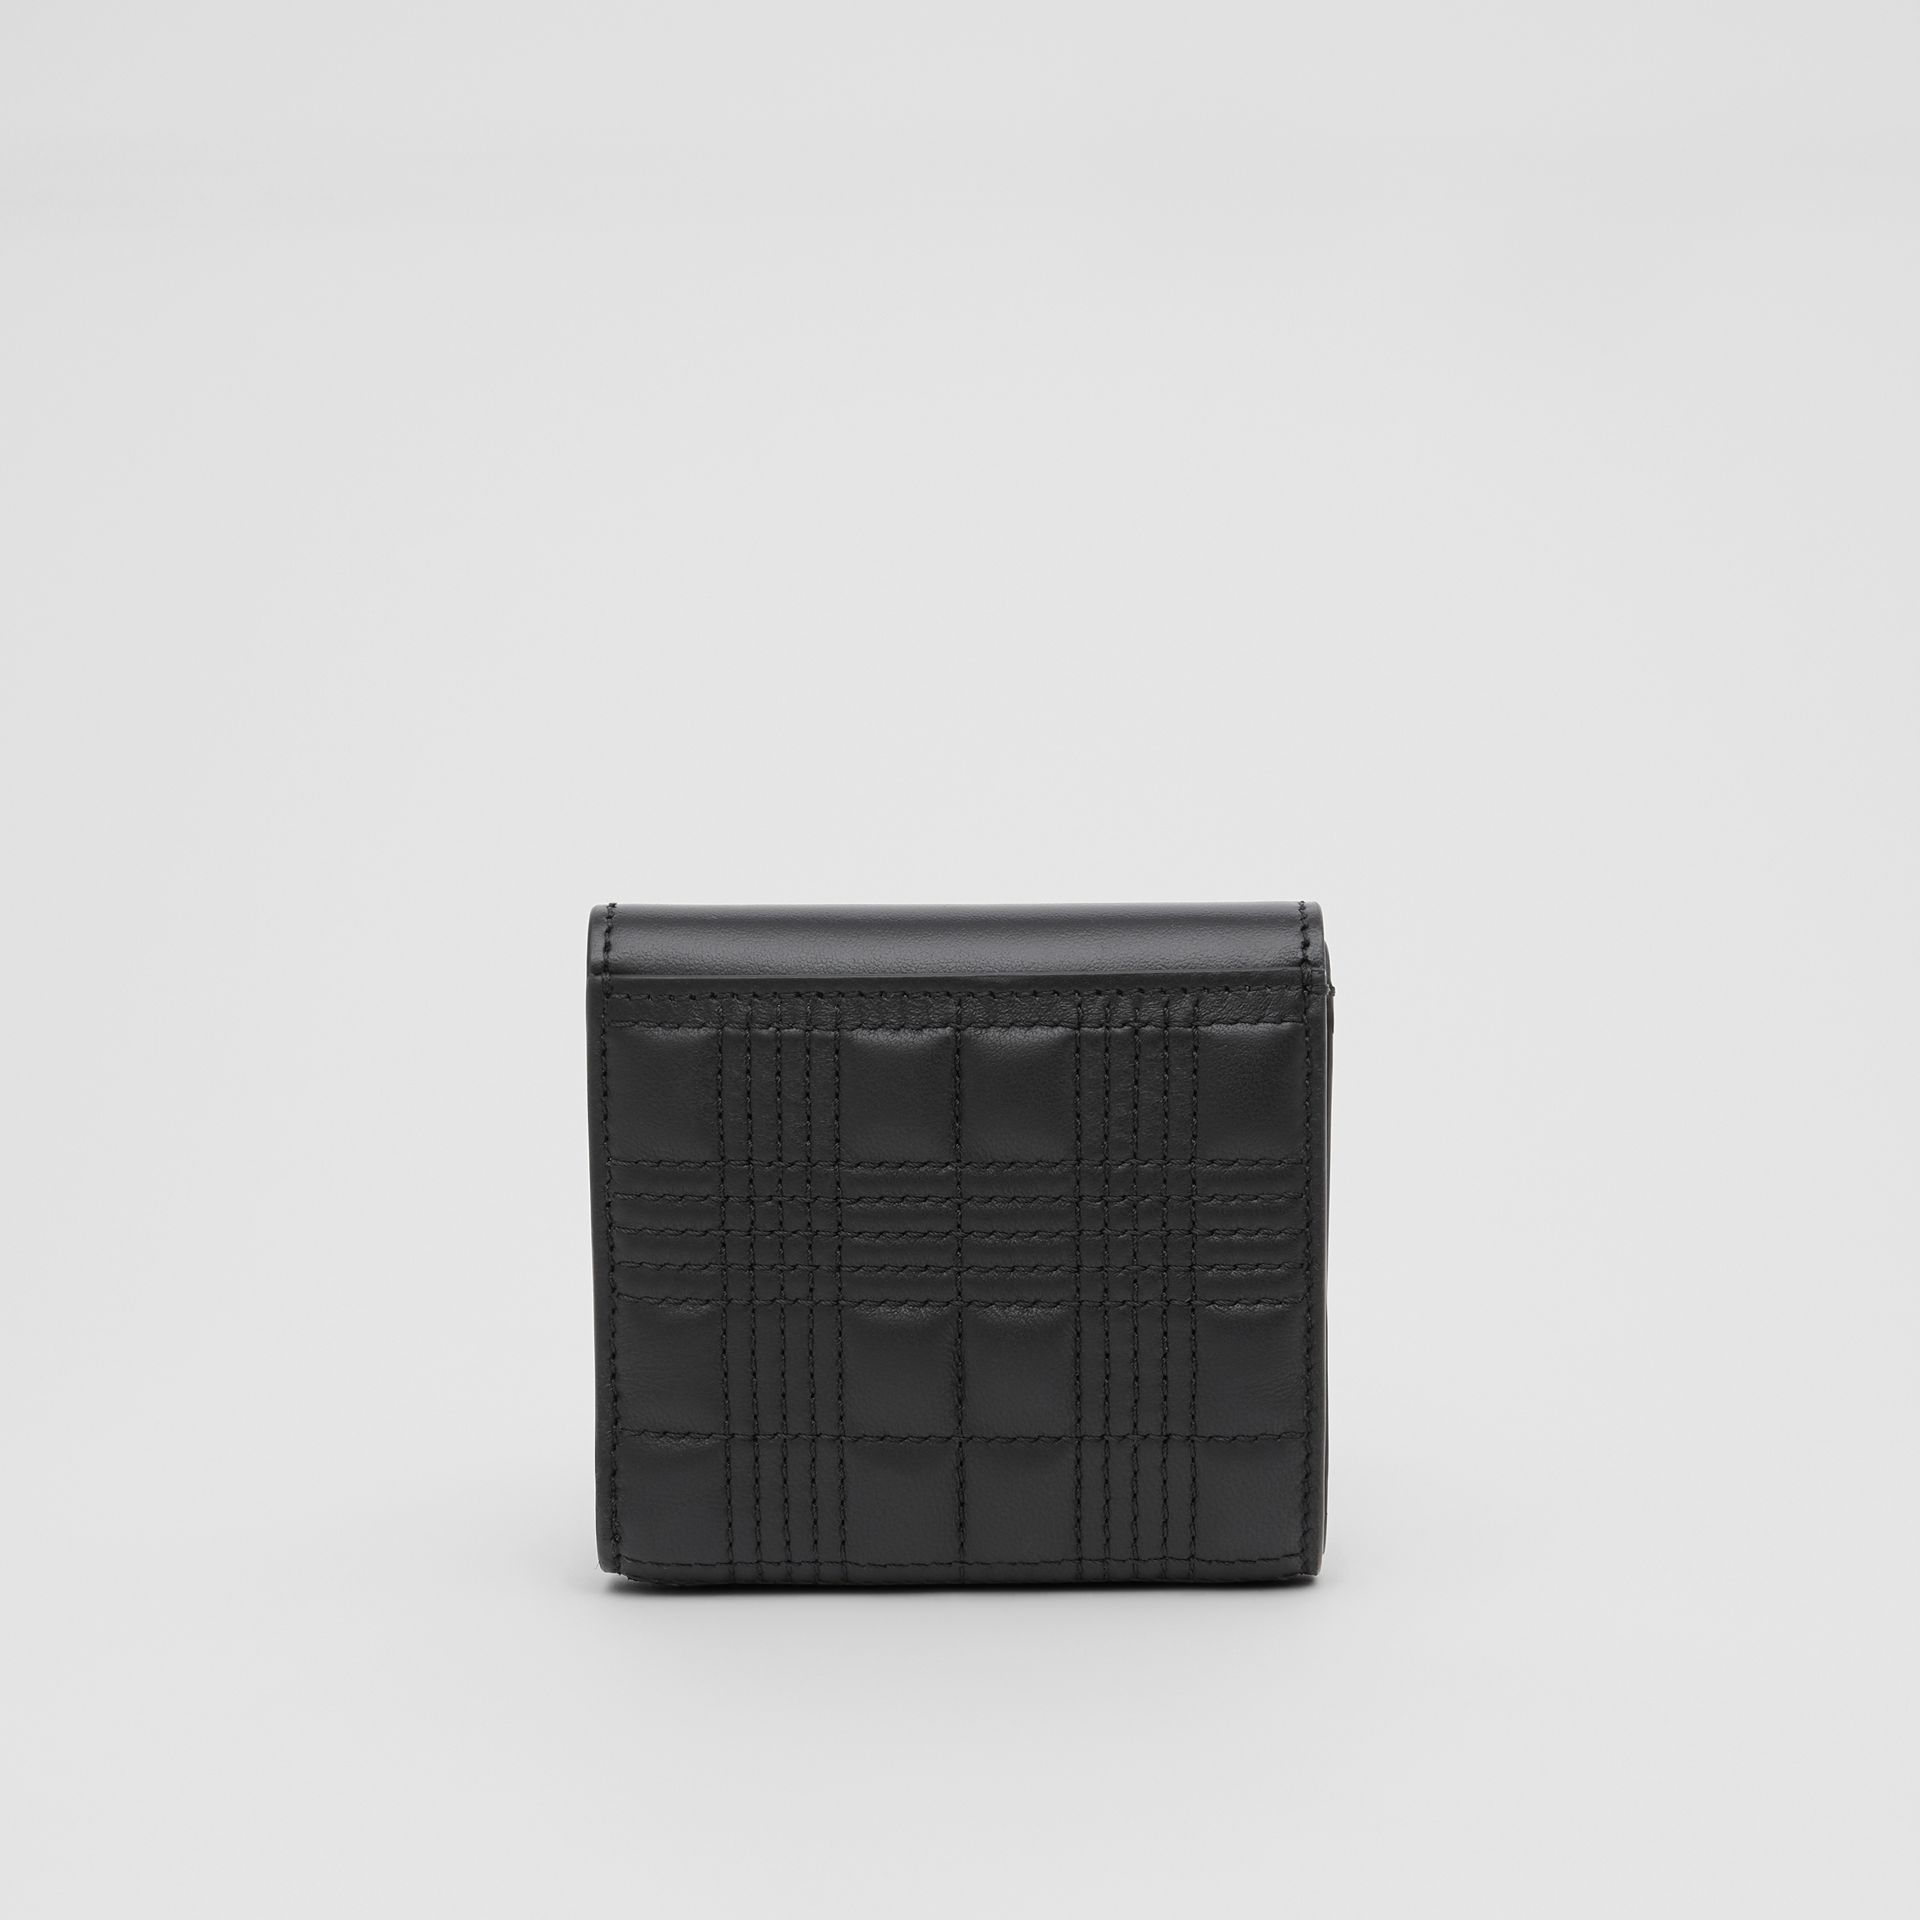 Quilted Lambskin Folding Wallet in Black - Women | Burberry Hong Kong S.A.R - gallery image 4